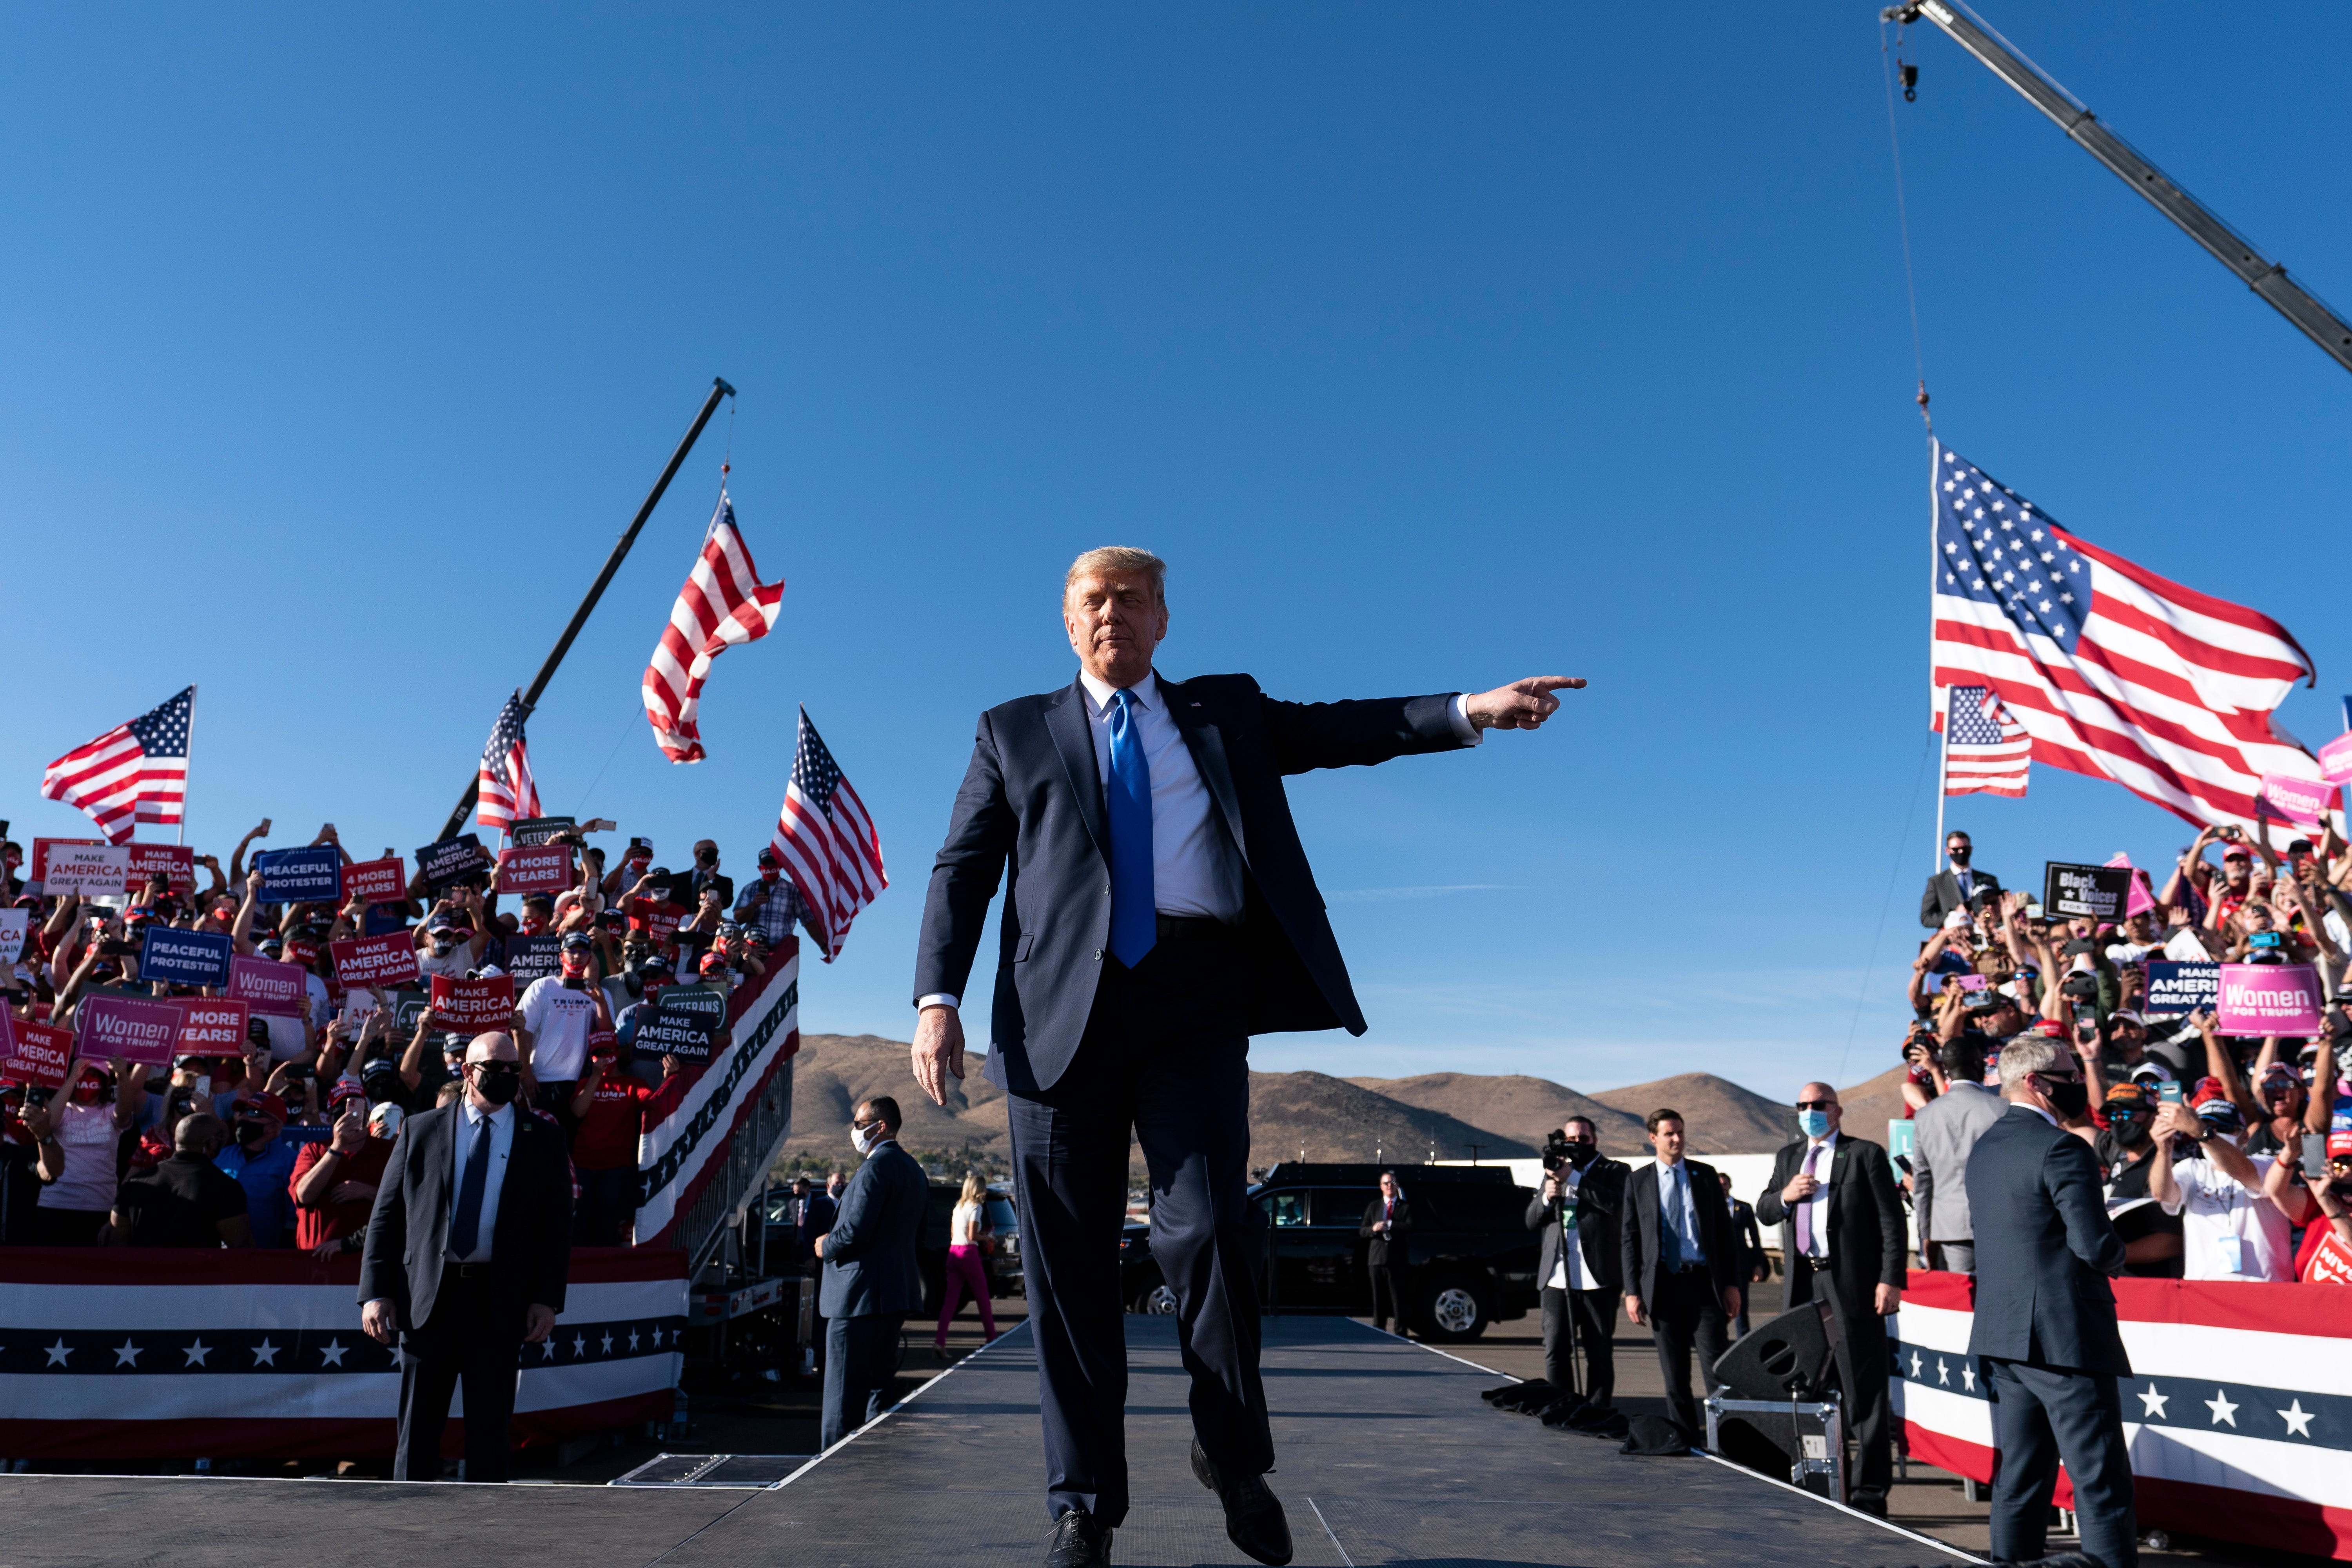 President Donald Trump points to supporters as he arrives to speak at a campaign rally at Carson City Airport, Sunday, Oct. 18, 2020, in Carson City, Nev.